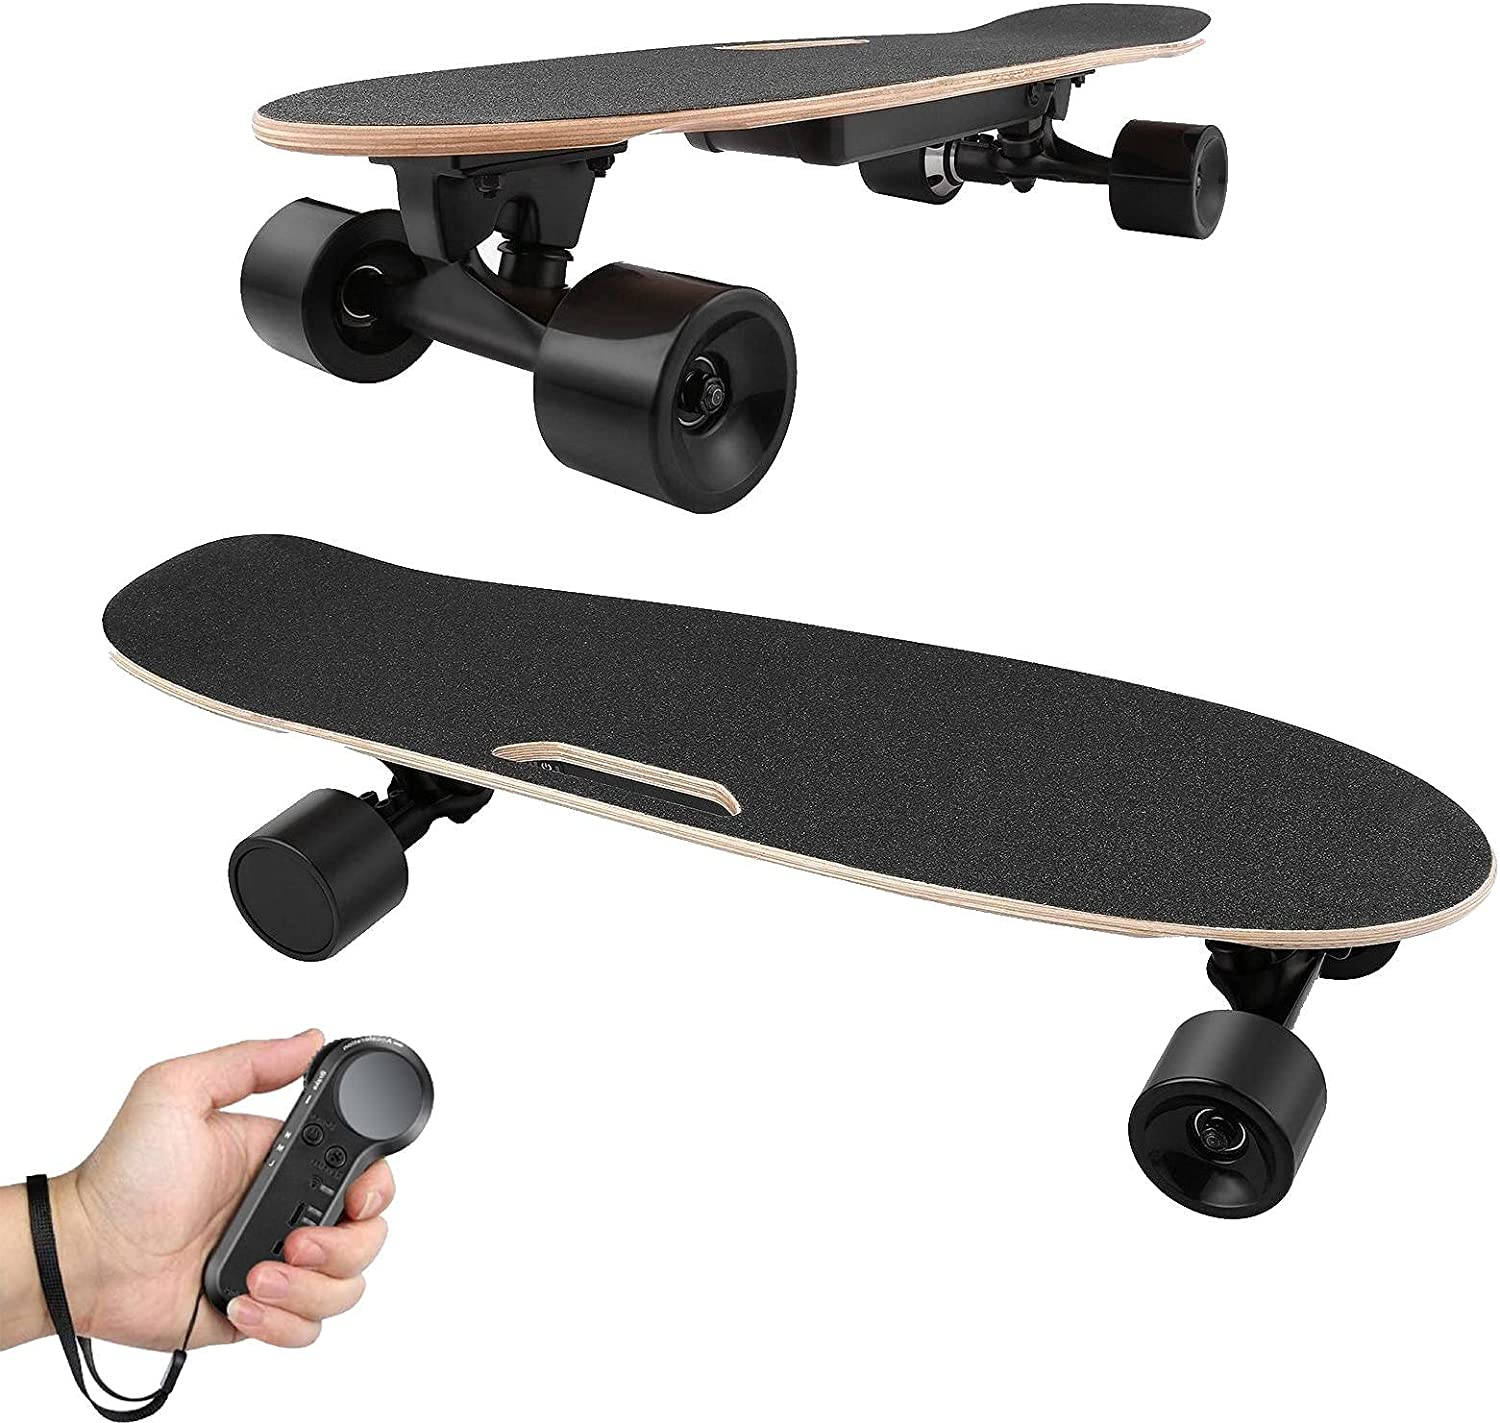 Aceshin Electric Skateboard Detroit Mall unisex with Remote Handheld Wireless Contro